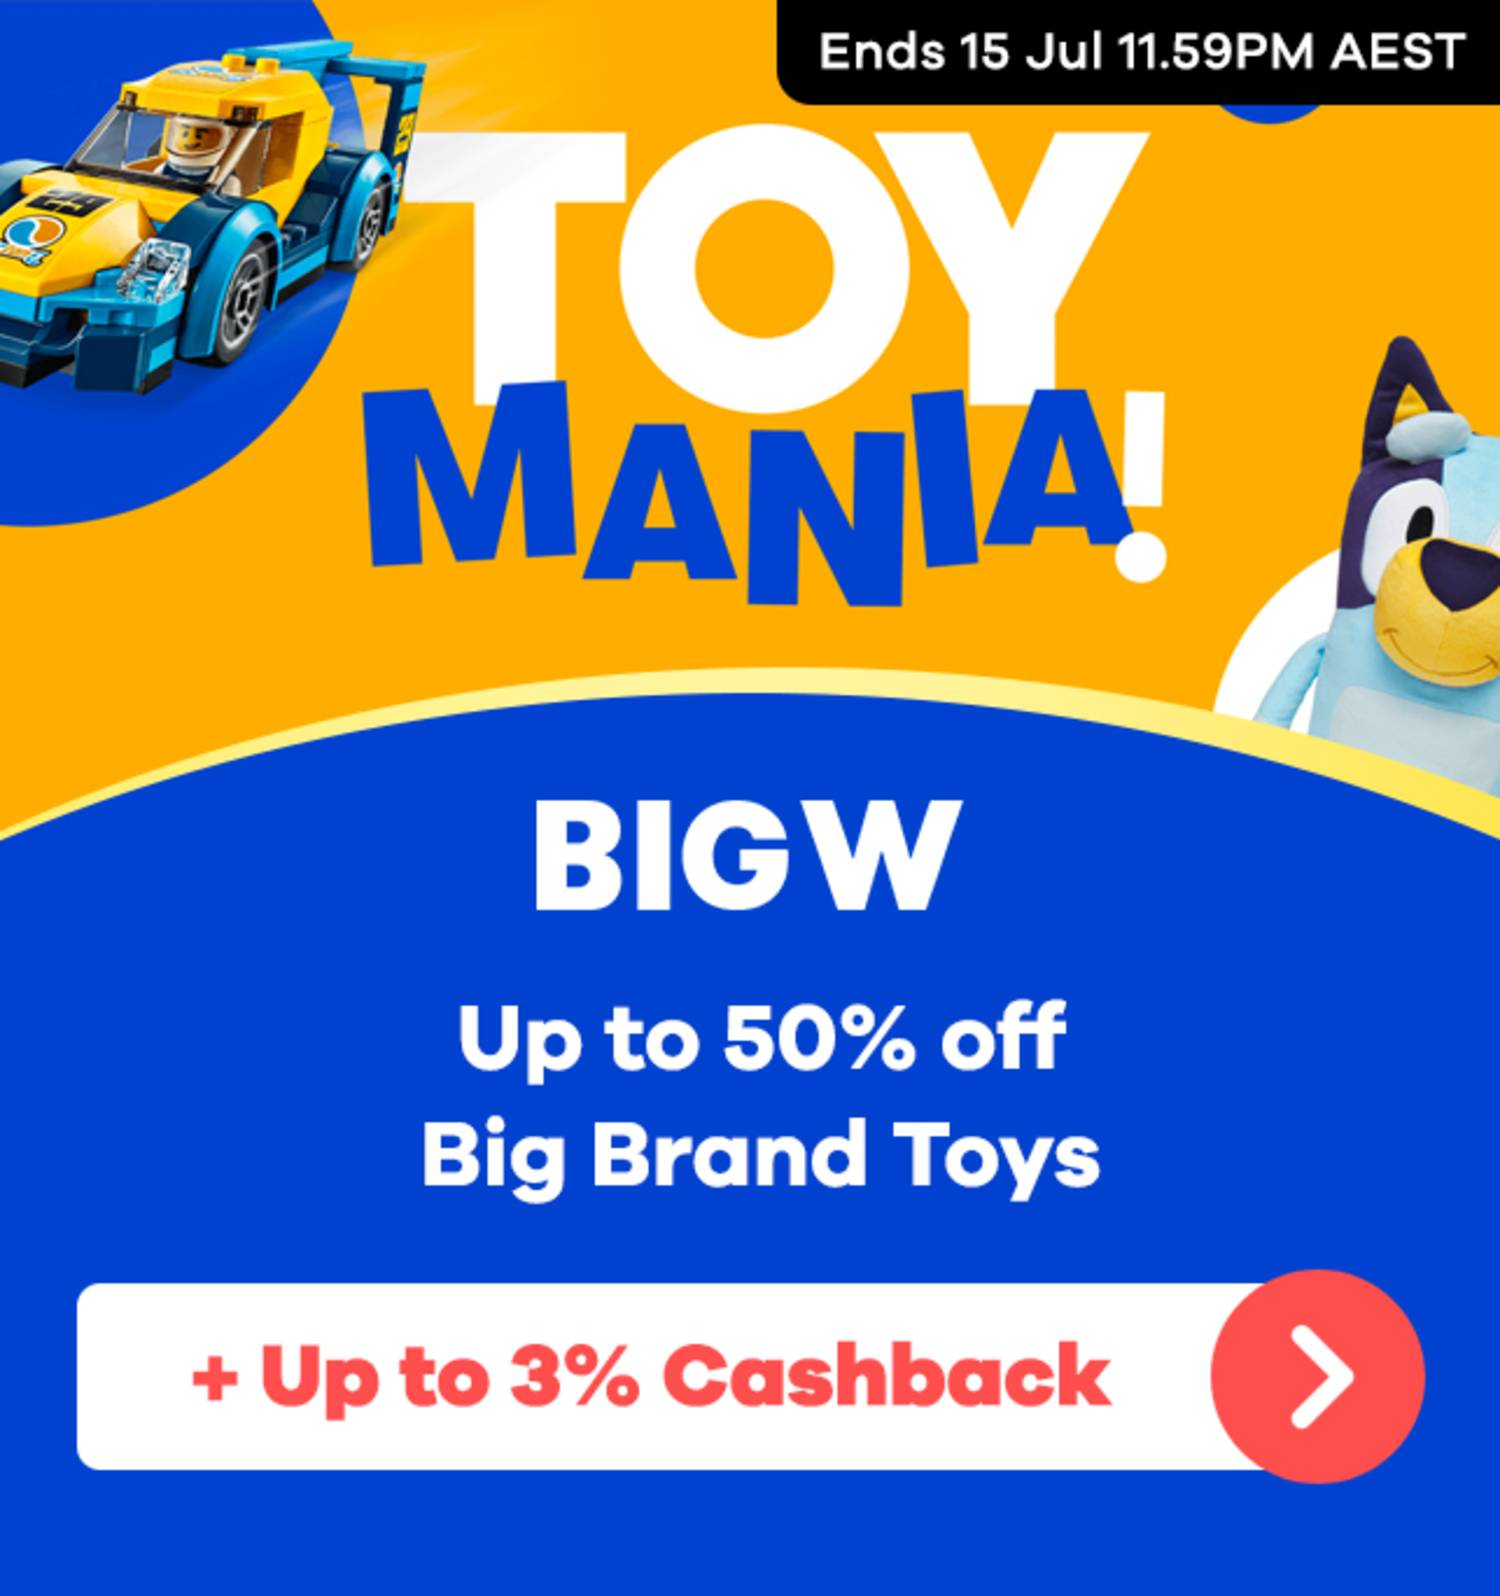 BIG W - Toy Mania Sale